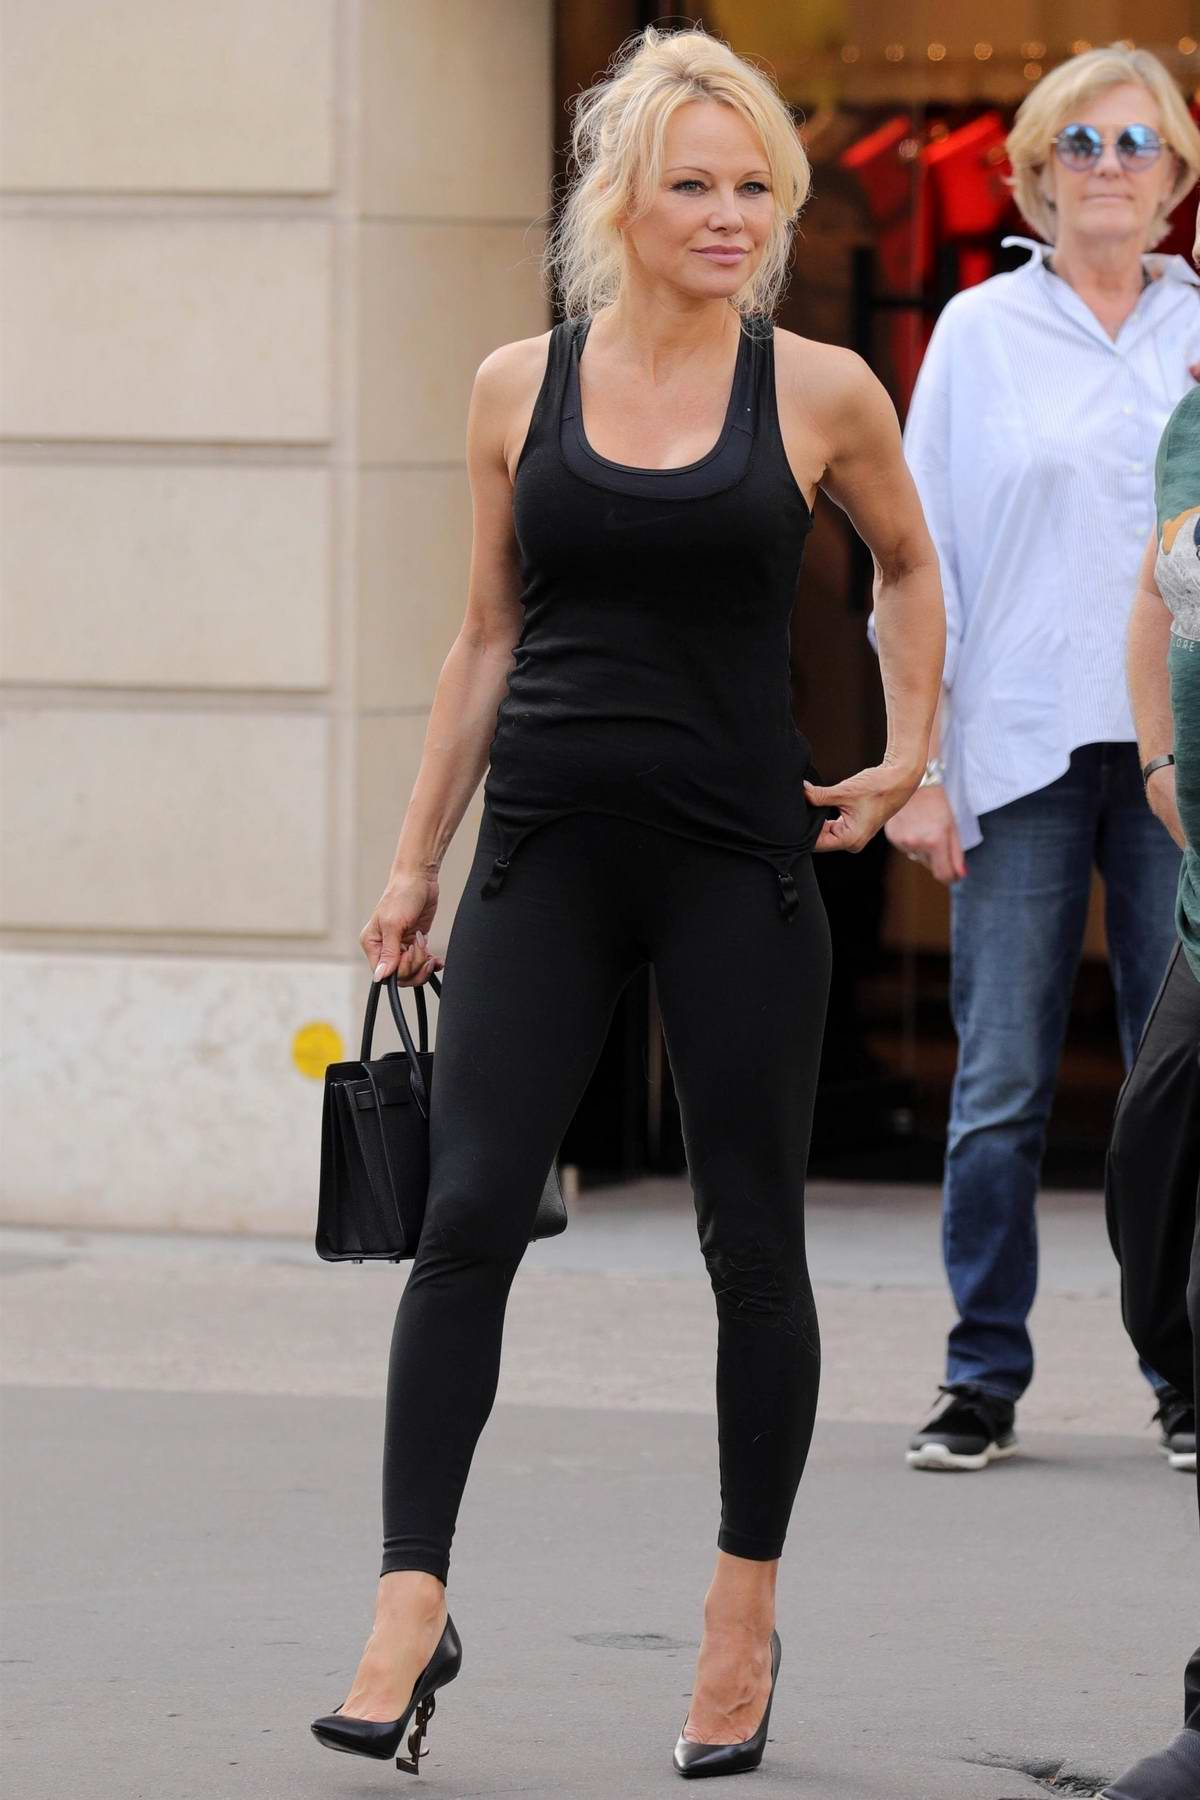 Pamela Anderson spotted while shopping at Balenciaga with her dog in Paris, France